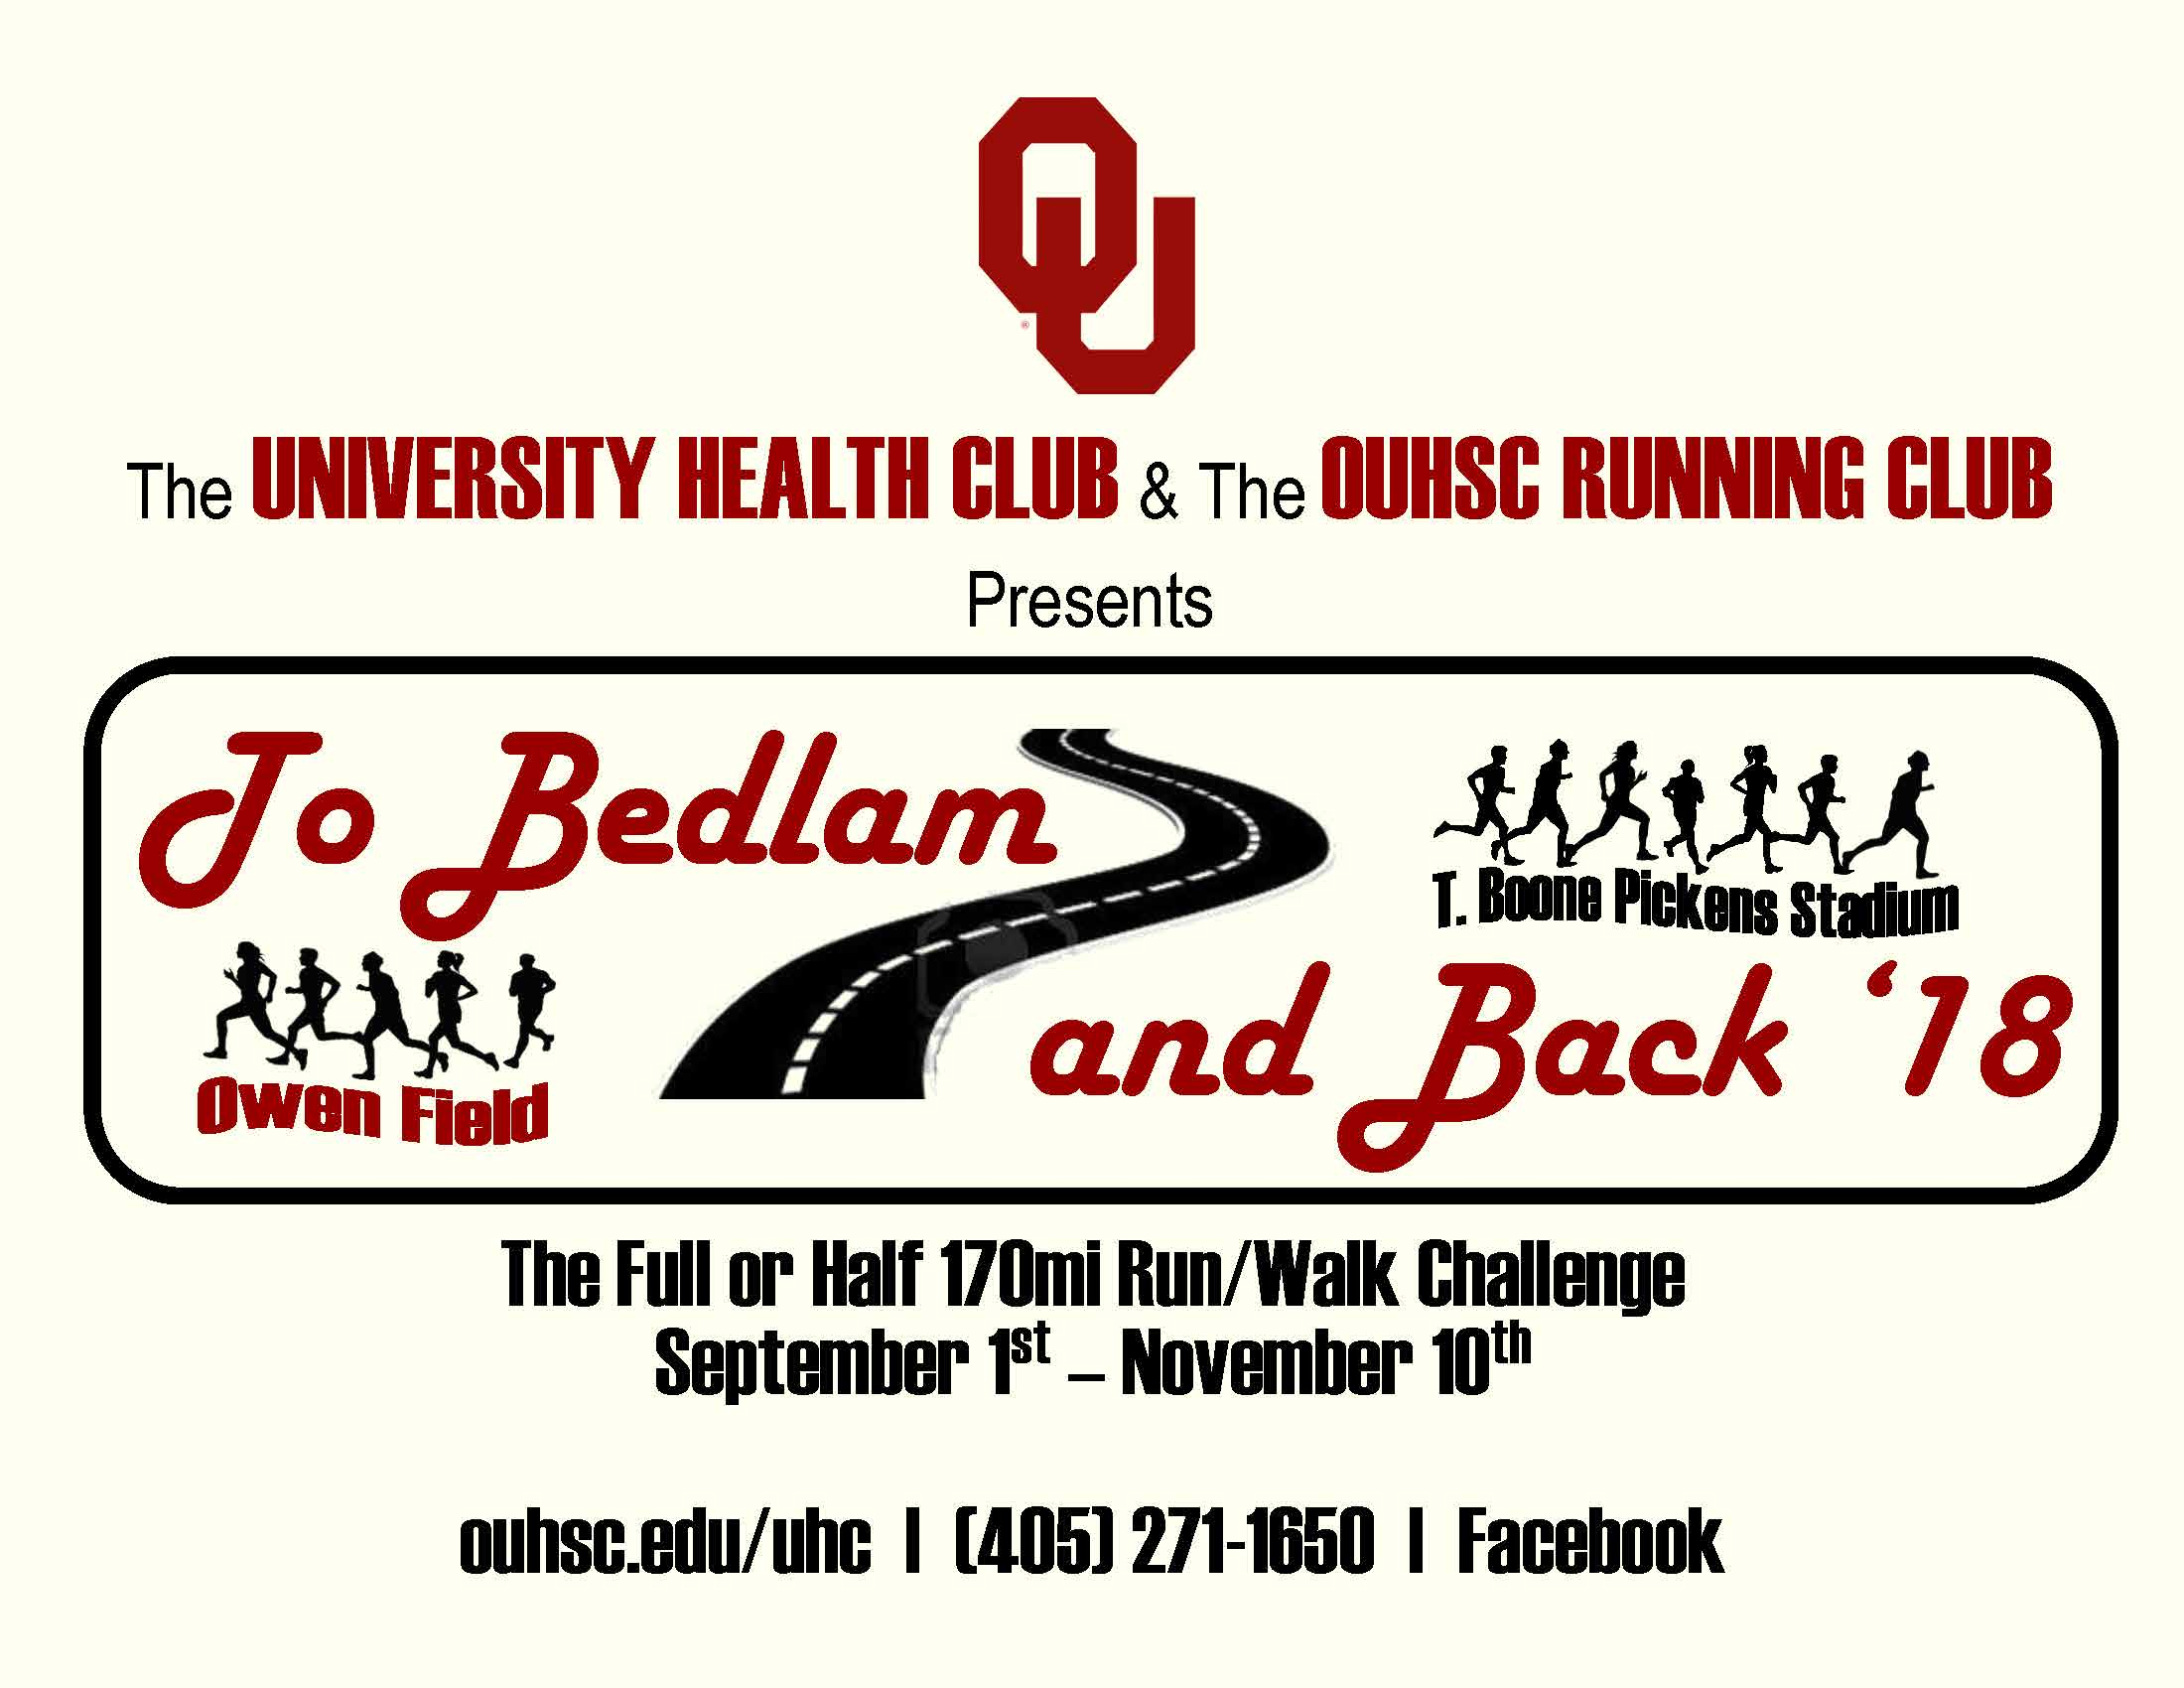 To Bedlam and Back